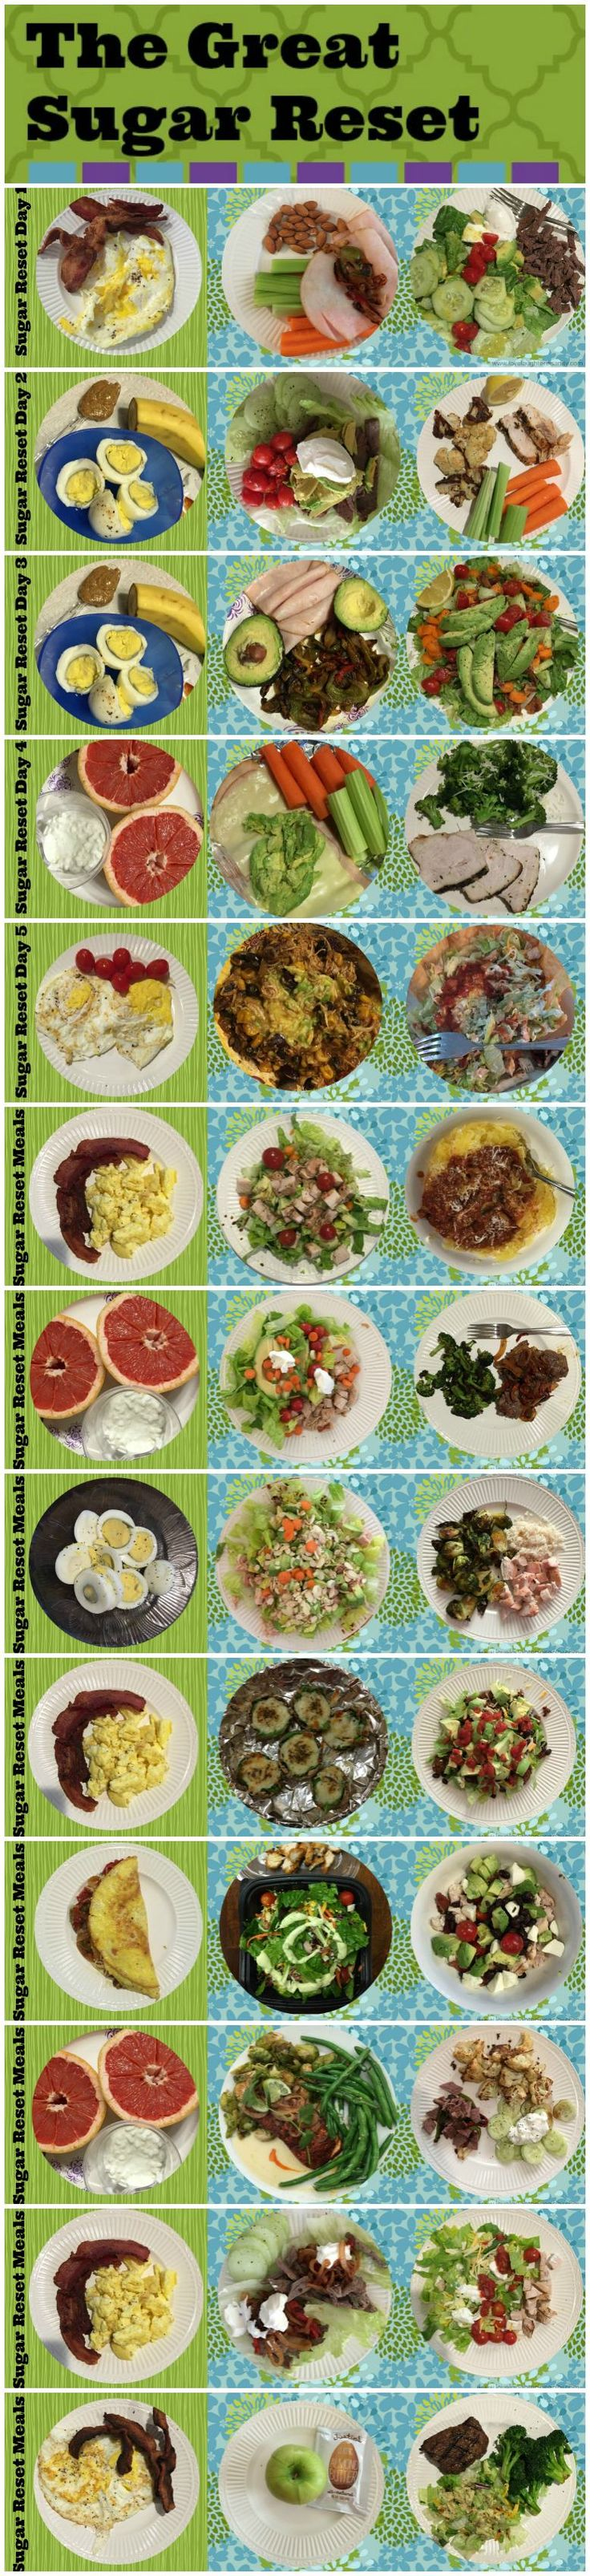 21 Day Sugar Detox // Sample Meals -gluten free, and healthy looking. Swap out the bananas for other fruit instead